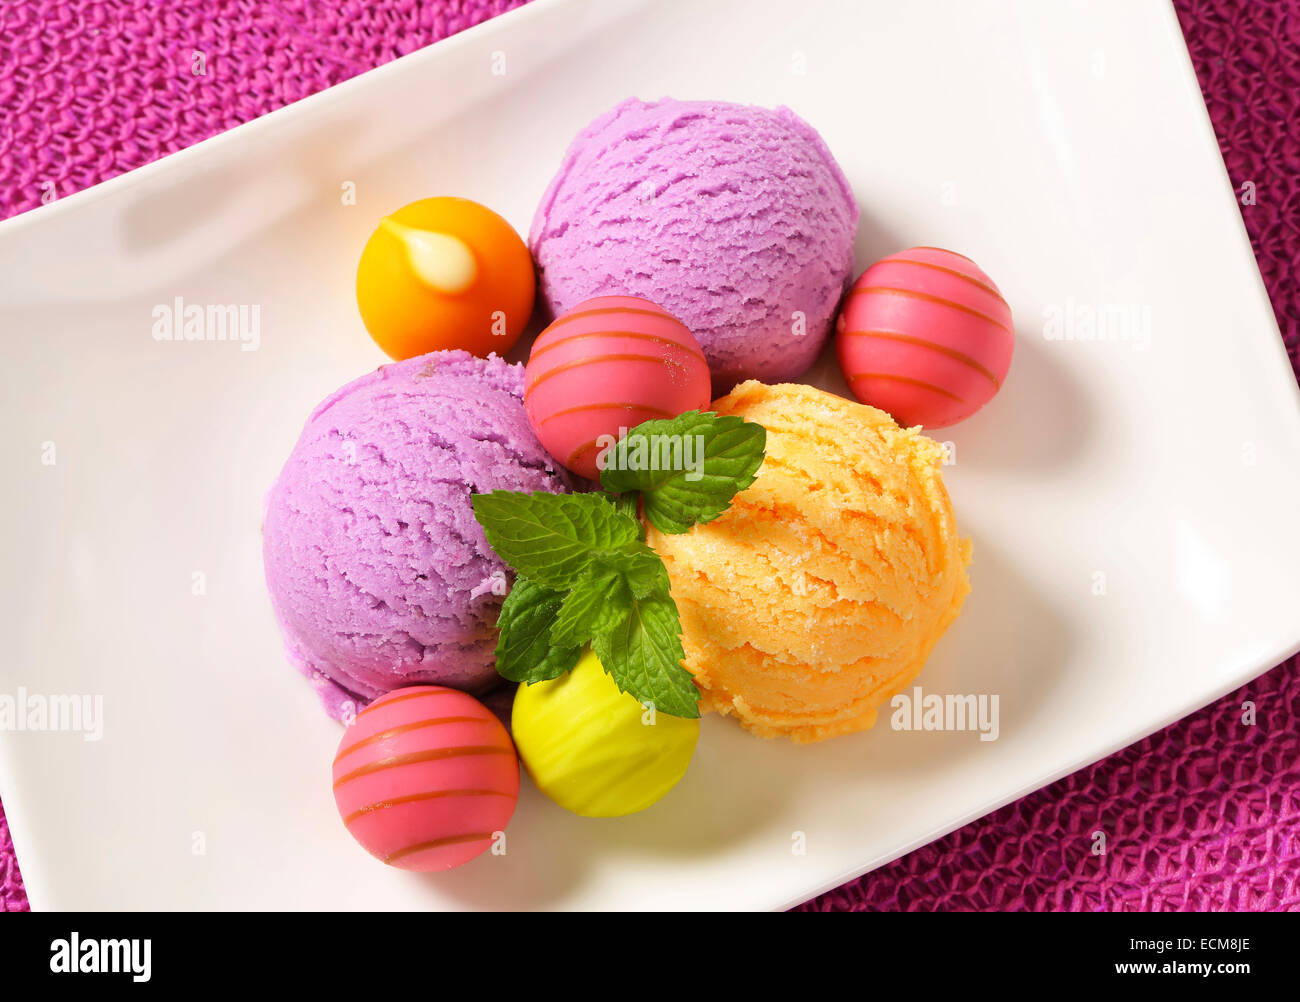 Fruit-flavored ice cream and white chocolate bonbons with fruit ganache filling - Stock Image